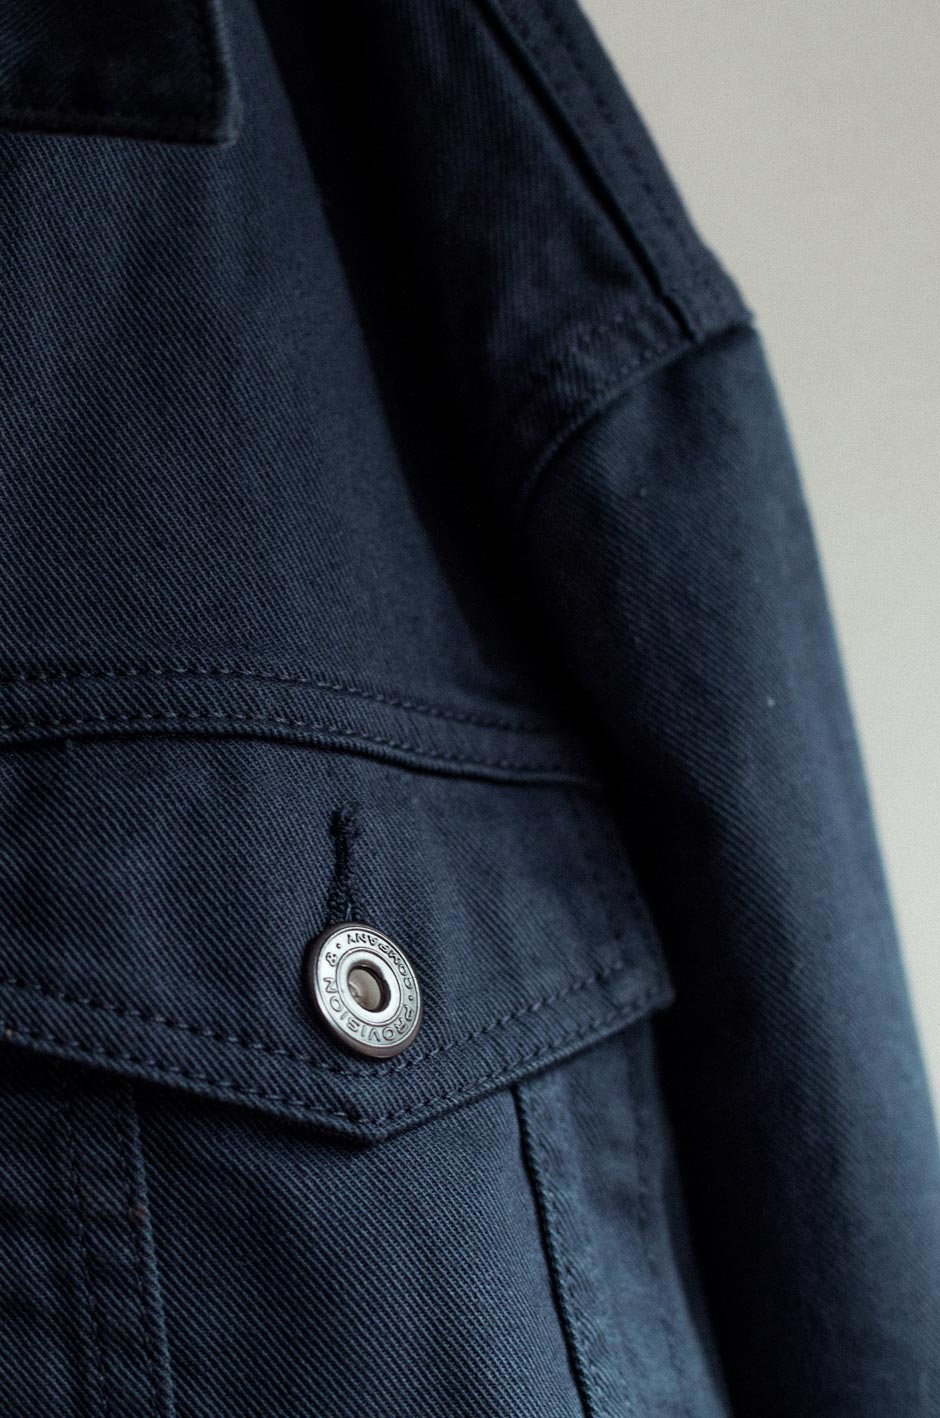 P&Co (provisions & co) Lost cause worker jackets journal